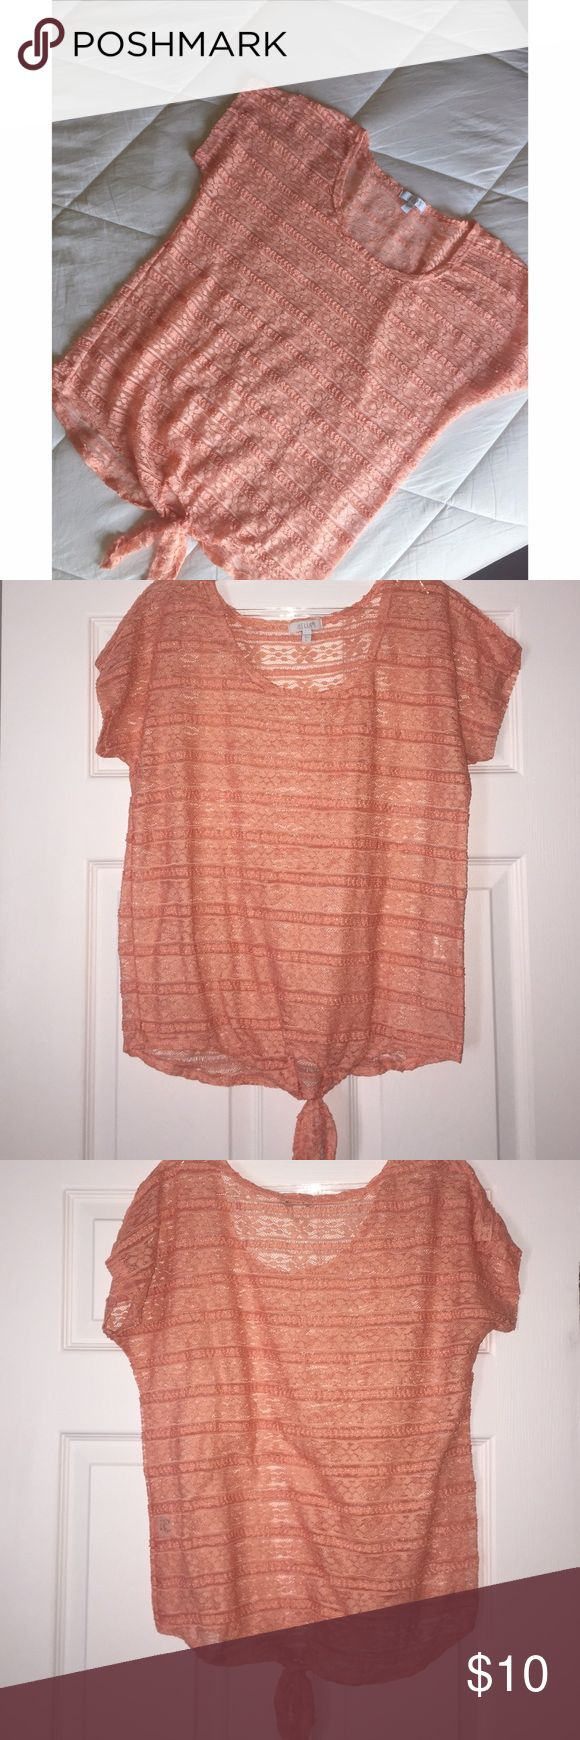 Light Peach Lace Front Knot Top This top is in EUC! Worn a few times, yet remains in pristine condition. It is a long light peach colored lace top with a front knot tied in the front. Very brisk & bohemian inspried. Size is large. Very pretty Delia's Tops